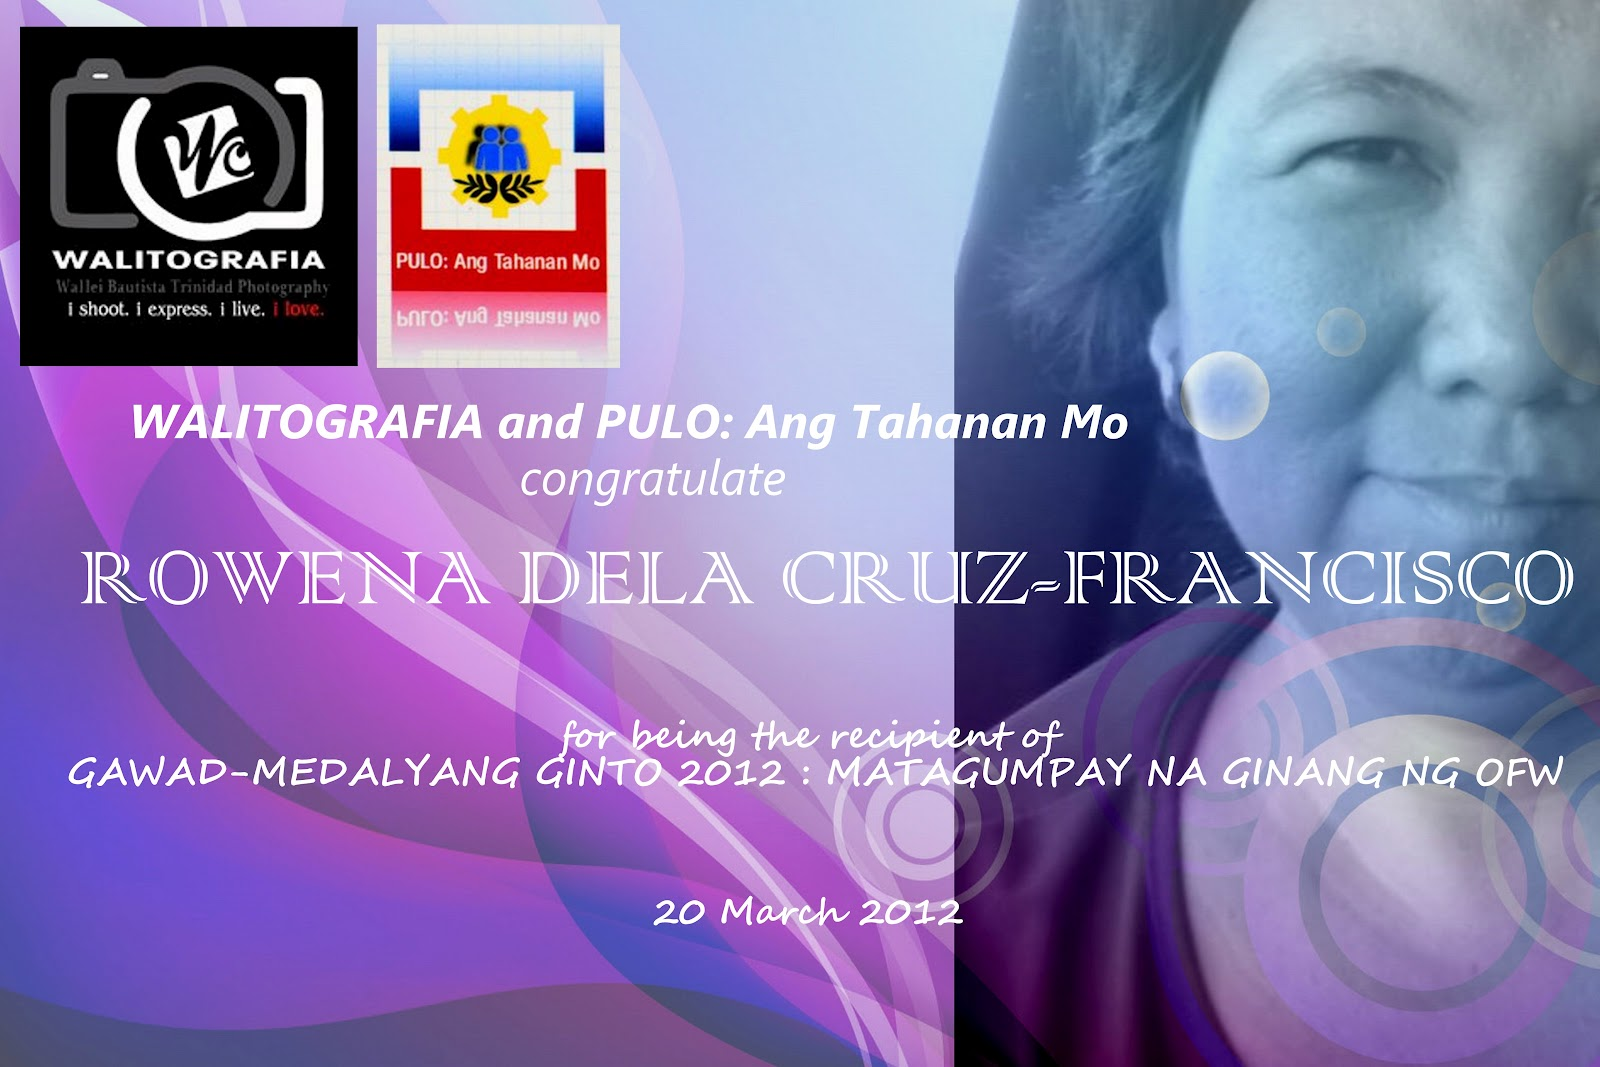 Congratulations to Mrs. Rowena Dela Cruz-Francisco of Pulo, San Rafael